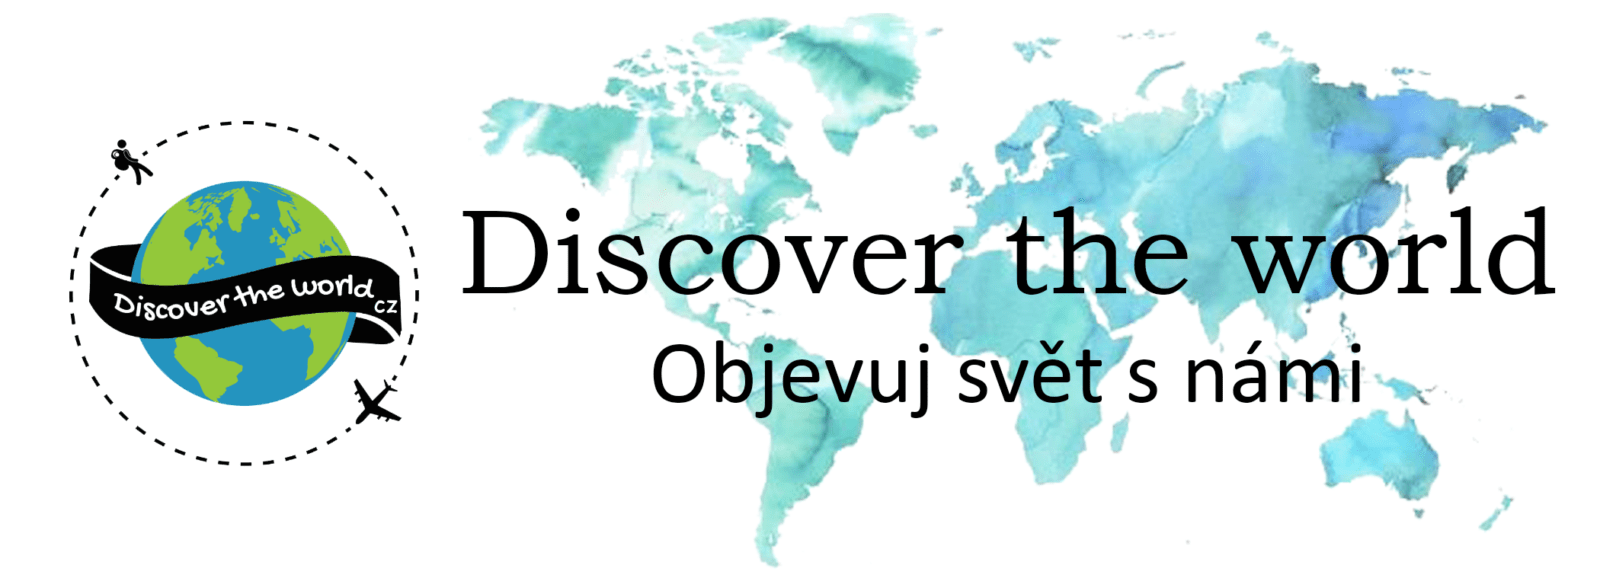 Discover the world cz